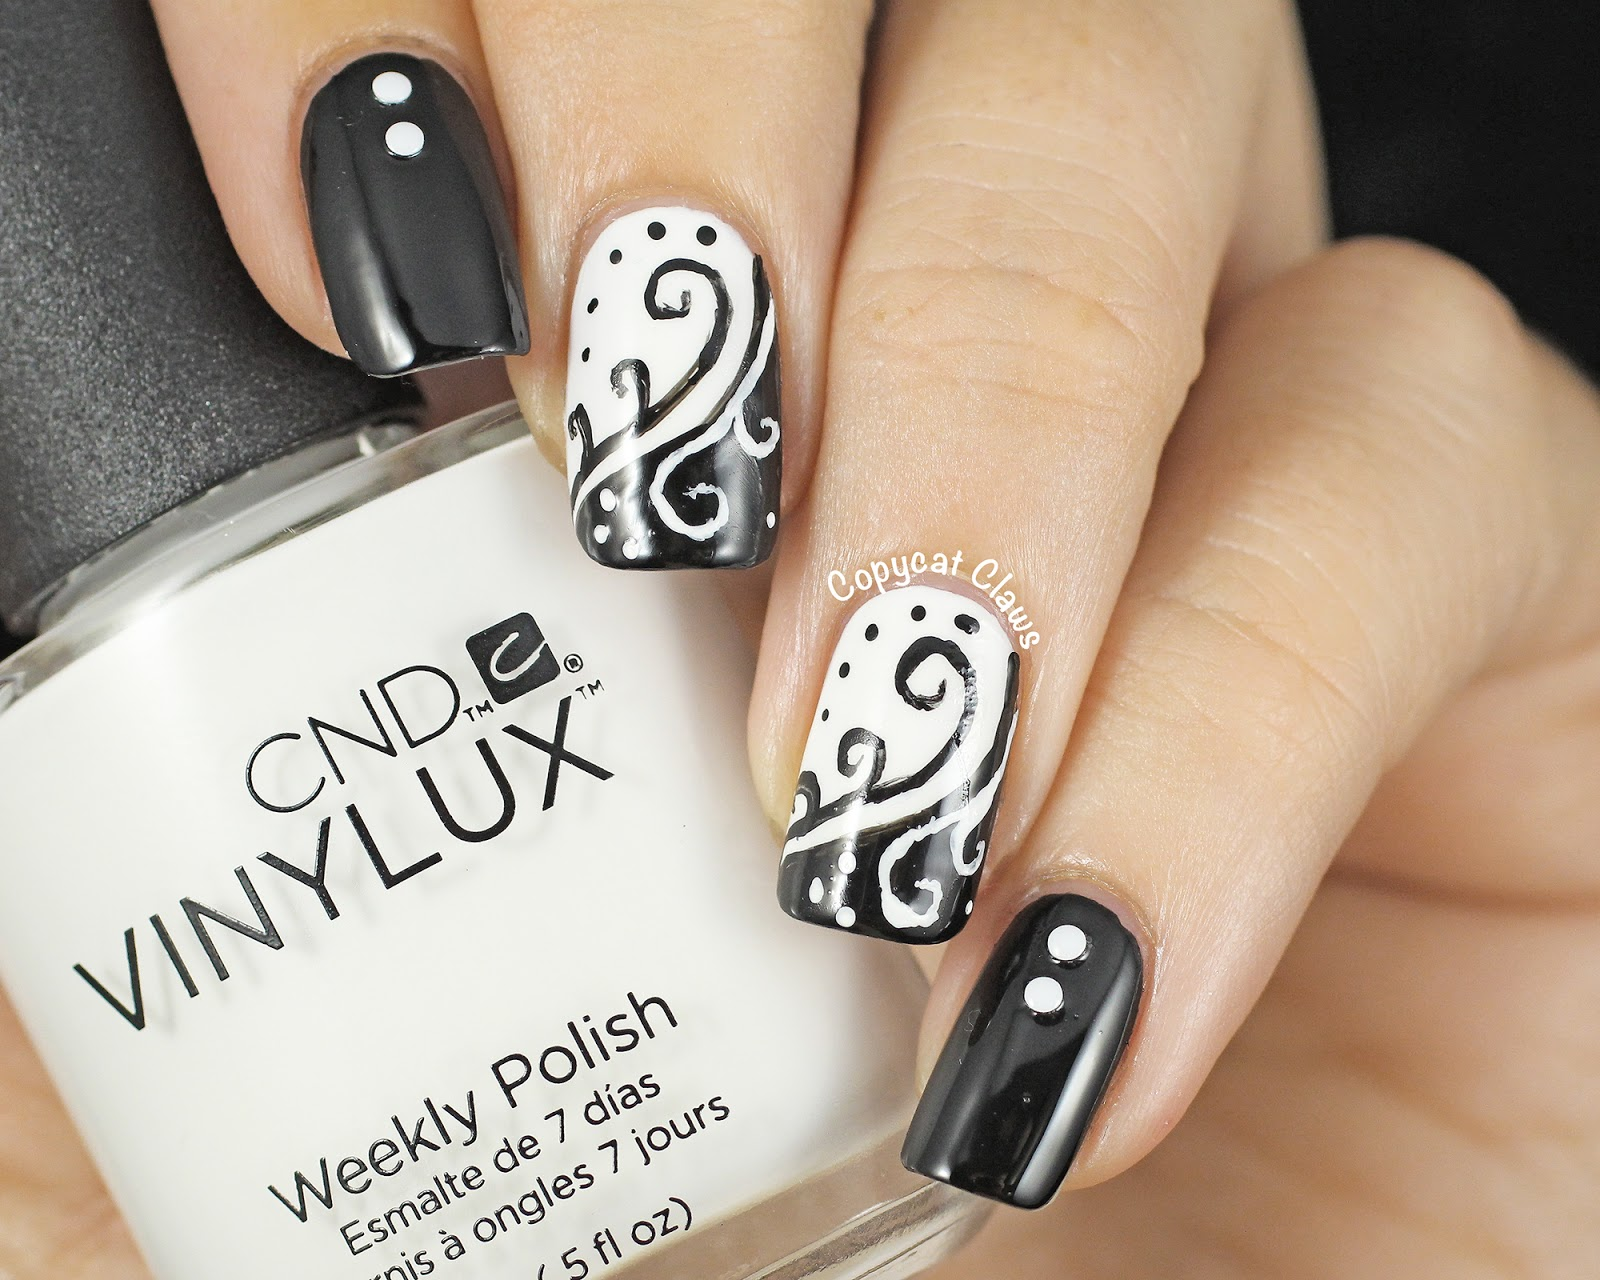 Copycat Claws: 31DC2014 Day 7 - Black and White Swirls